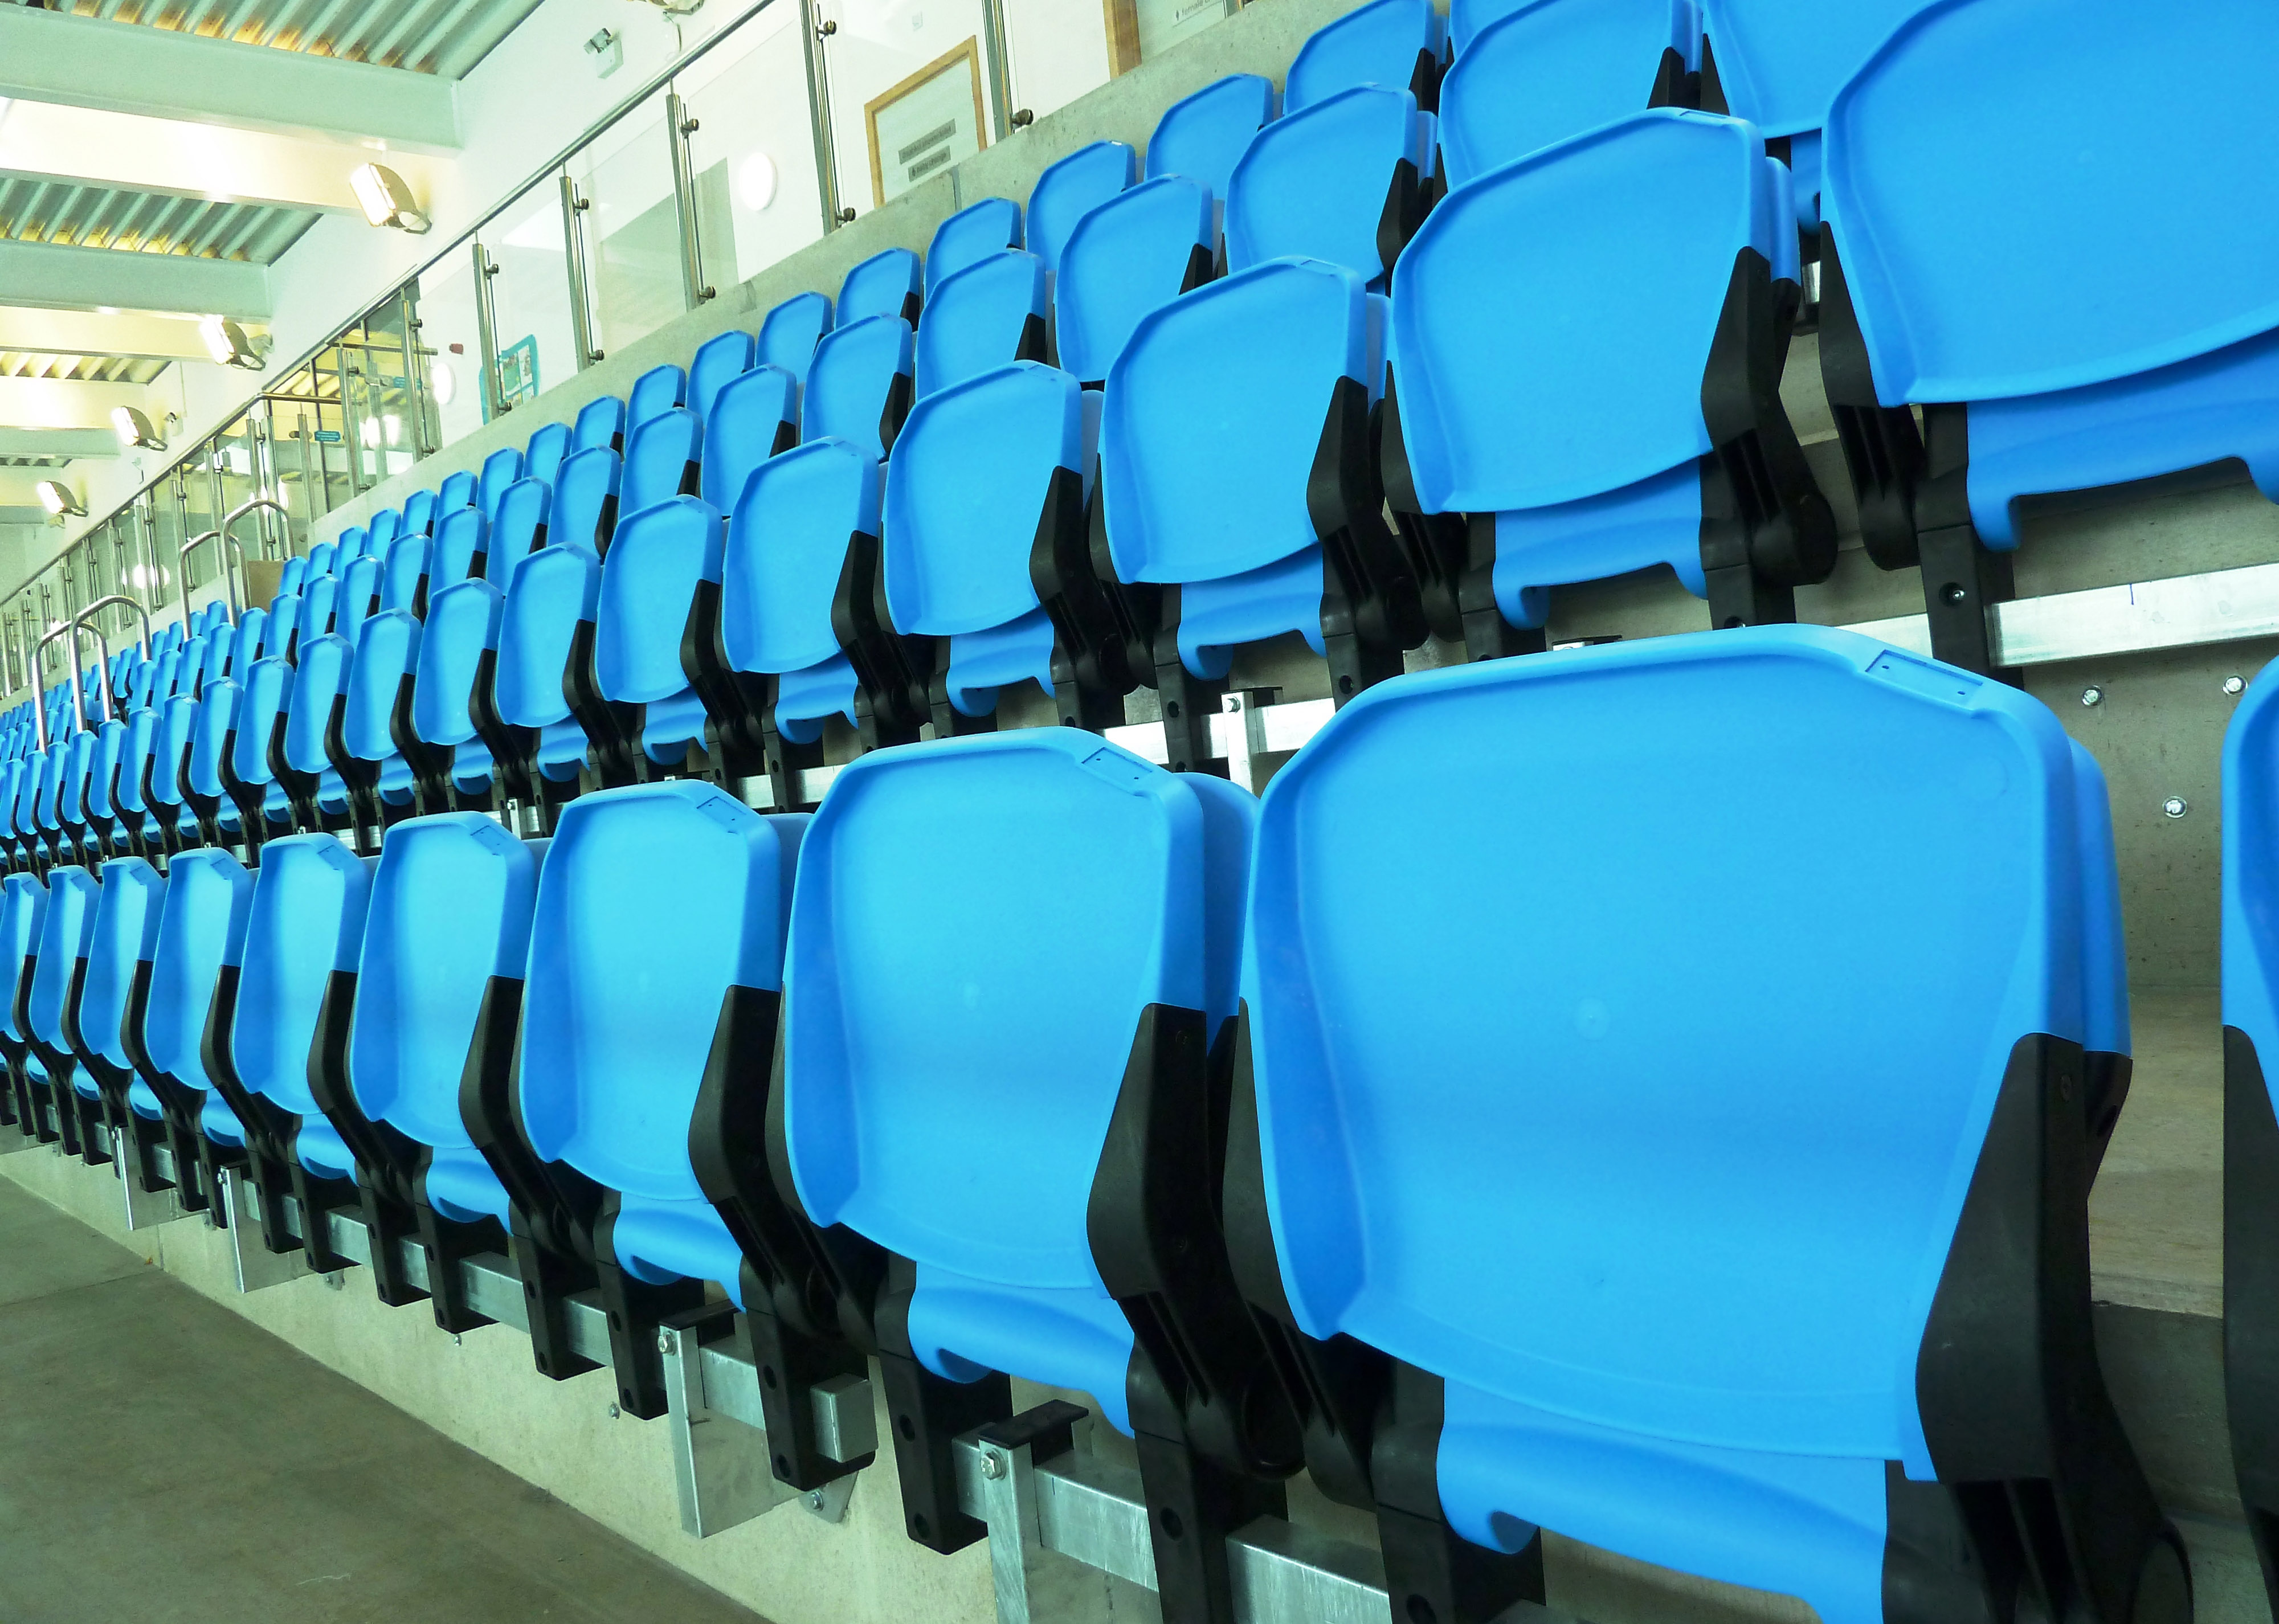 Sports Centre Seating